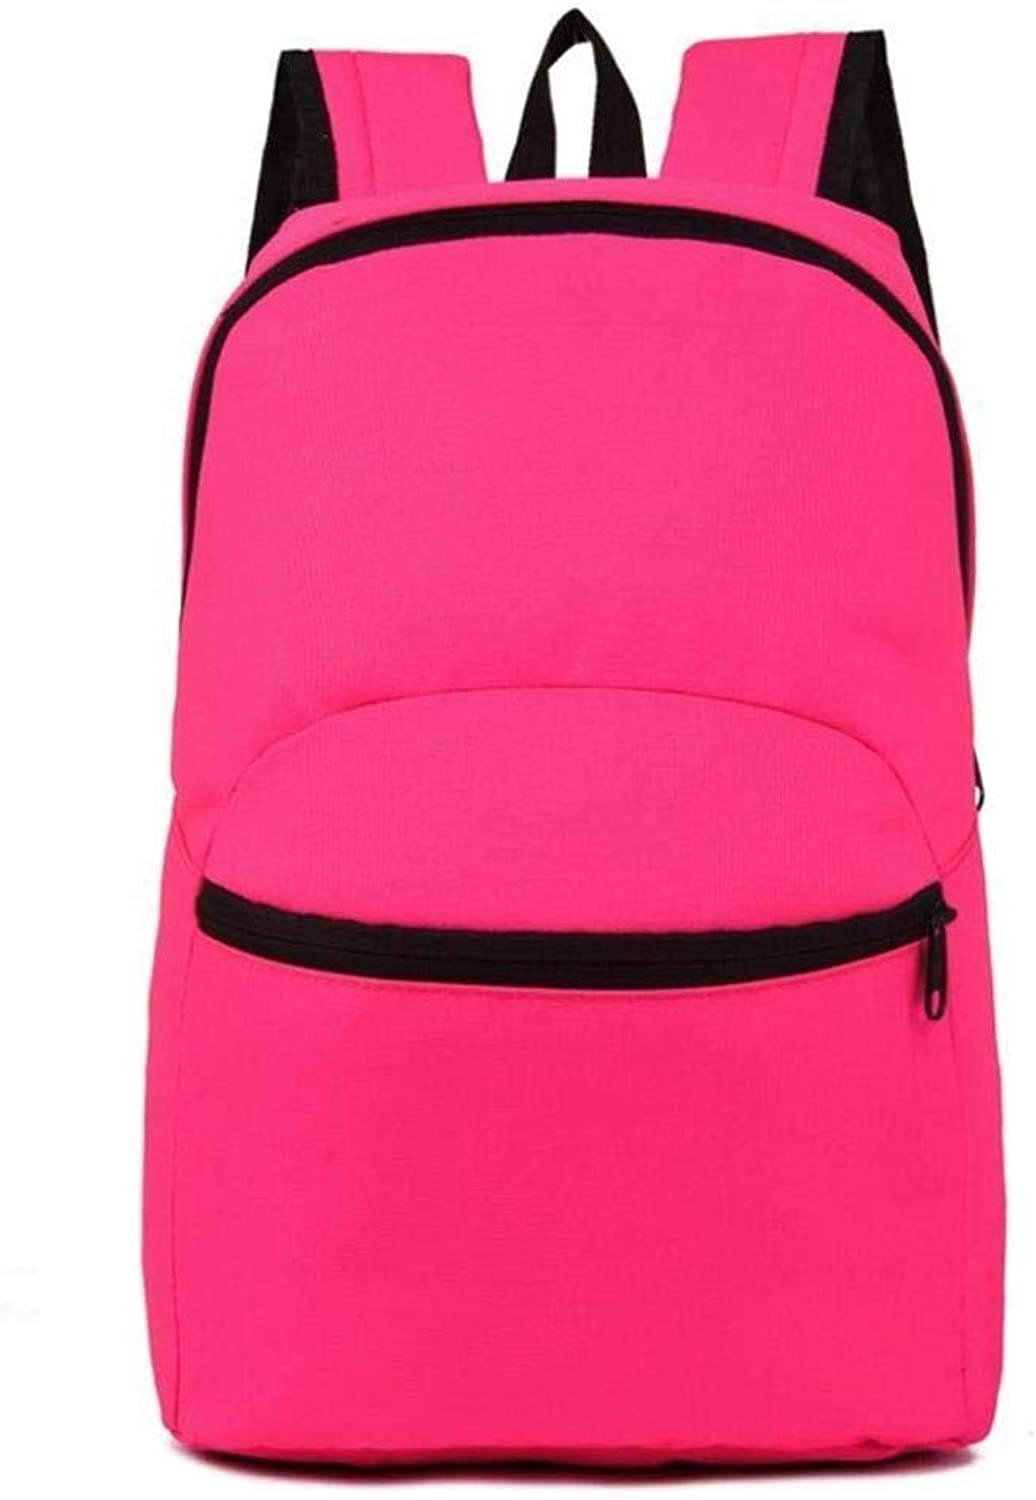 Backpack Foldable UltraLight Foldable Backpack, Unisex Durable Portable Travel and Outdoor Sports Backpack Durable Waterproof (color   C)